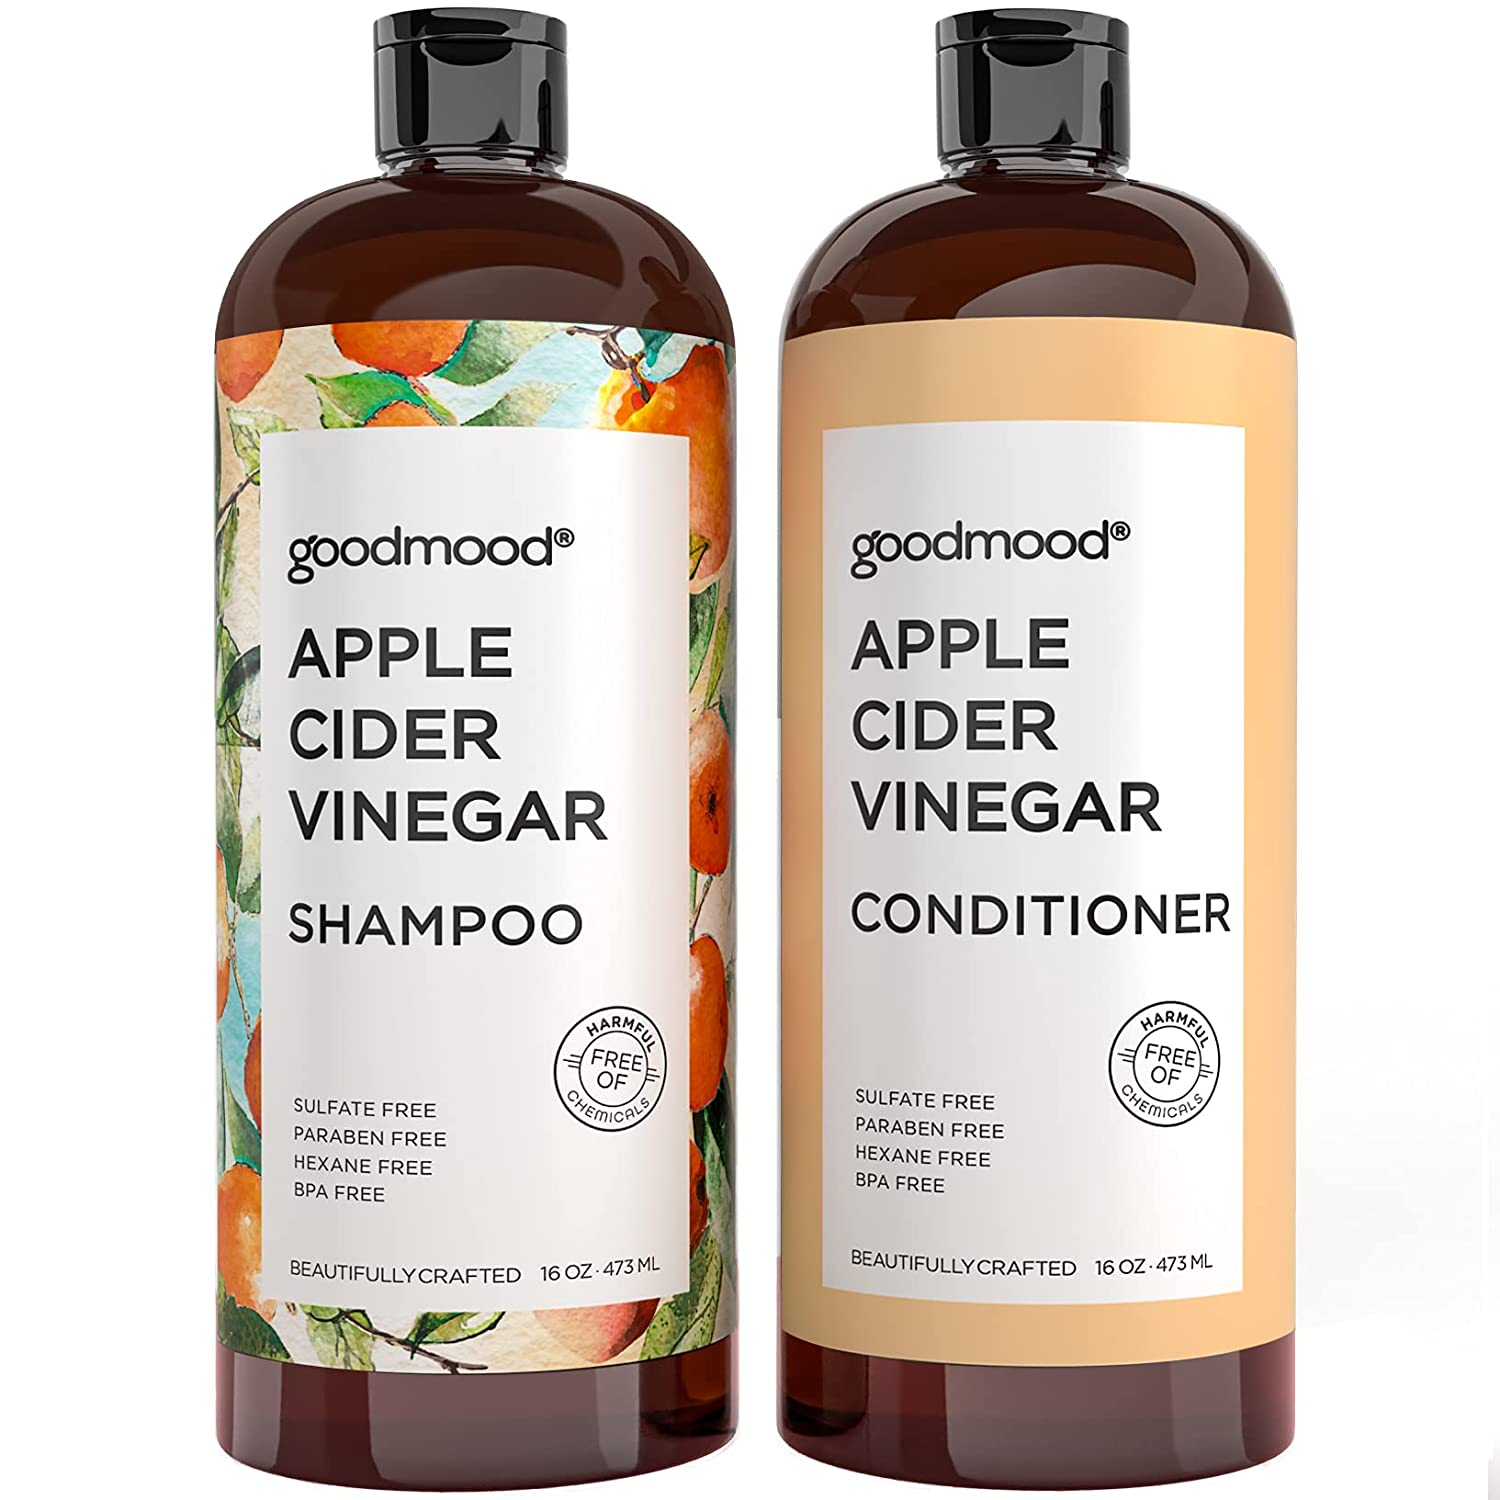 GoodMood Apple Cider Vinegar Shampoo and Conditioner For Hair Growth, Hair Loss Treatment For Men and Women with DHT Blockers